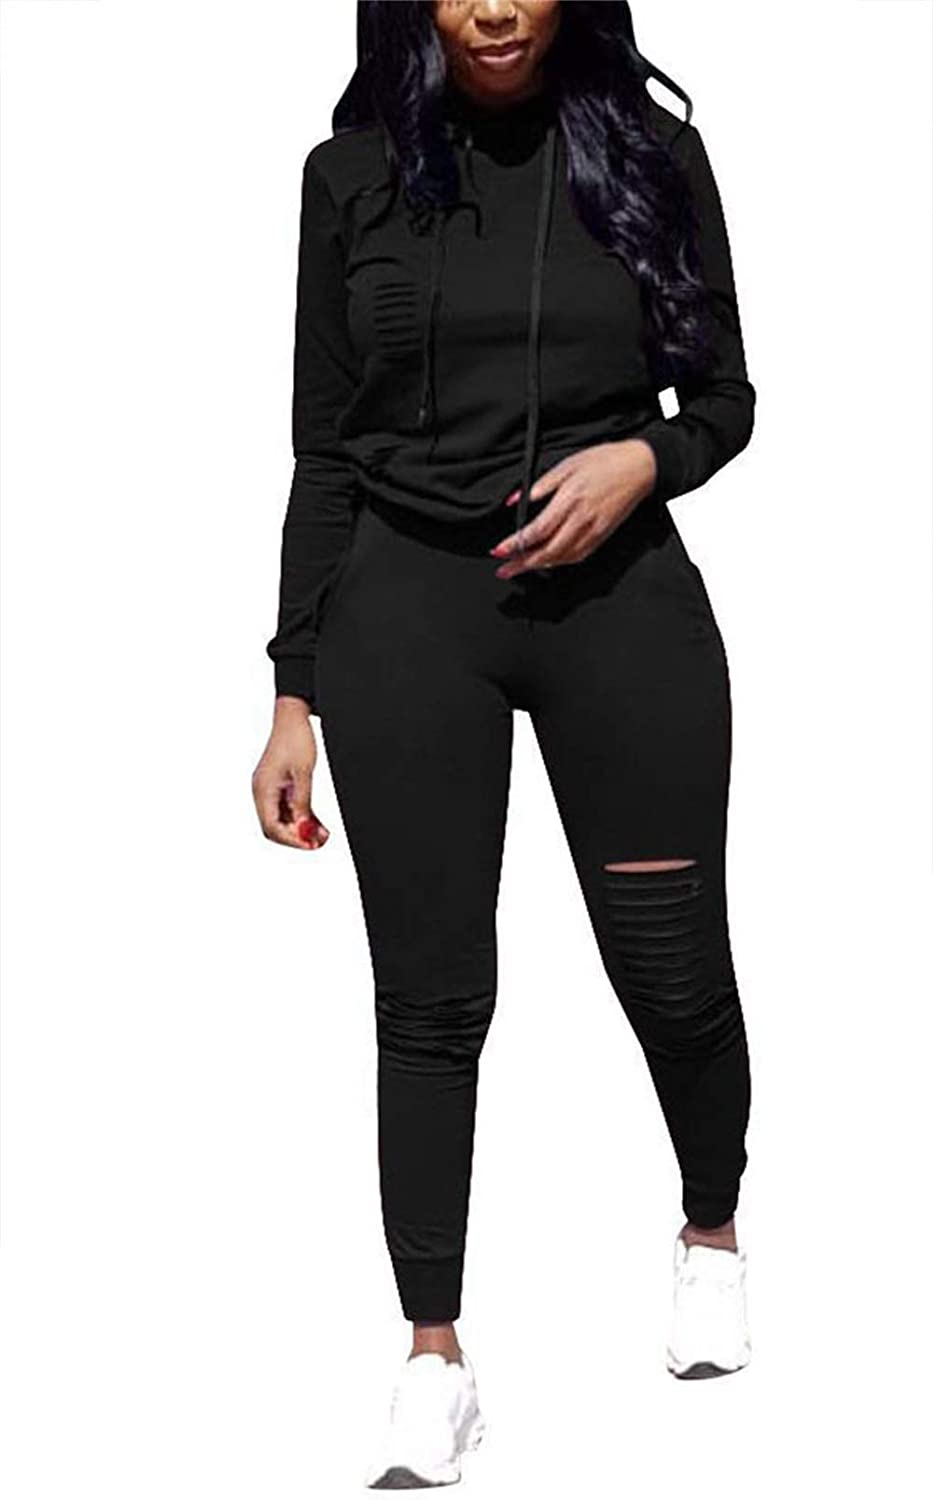 EOSIEDUR Women's 2 Piece Athletic Outfits Long Sleeve Ripped Pullover Hoodie - Bodycon Joggers Pants Sets